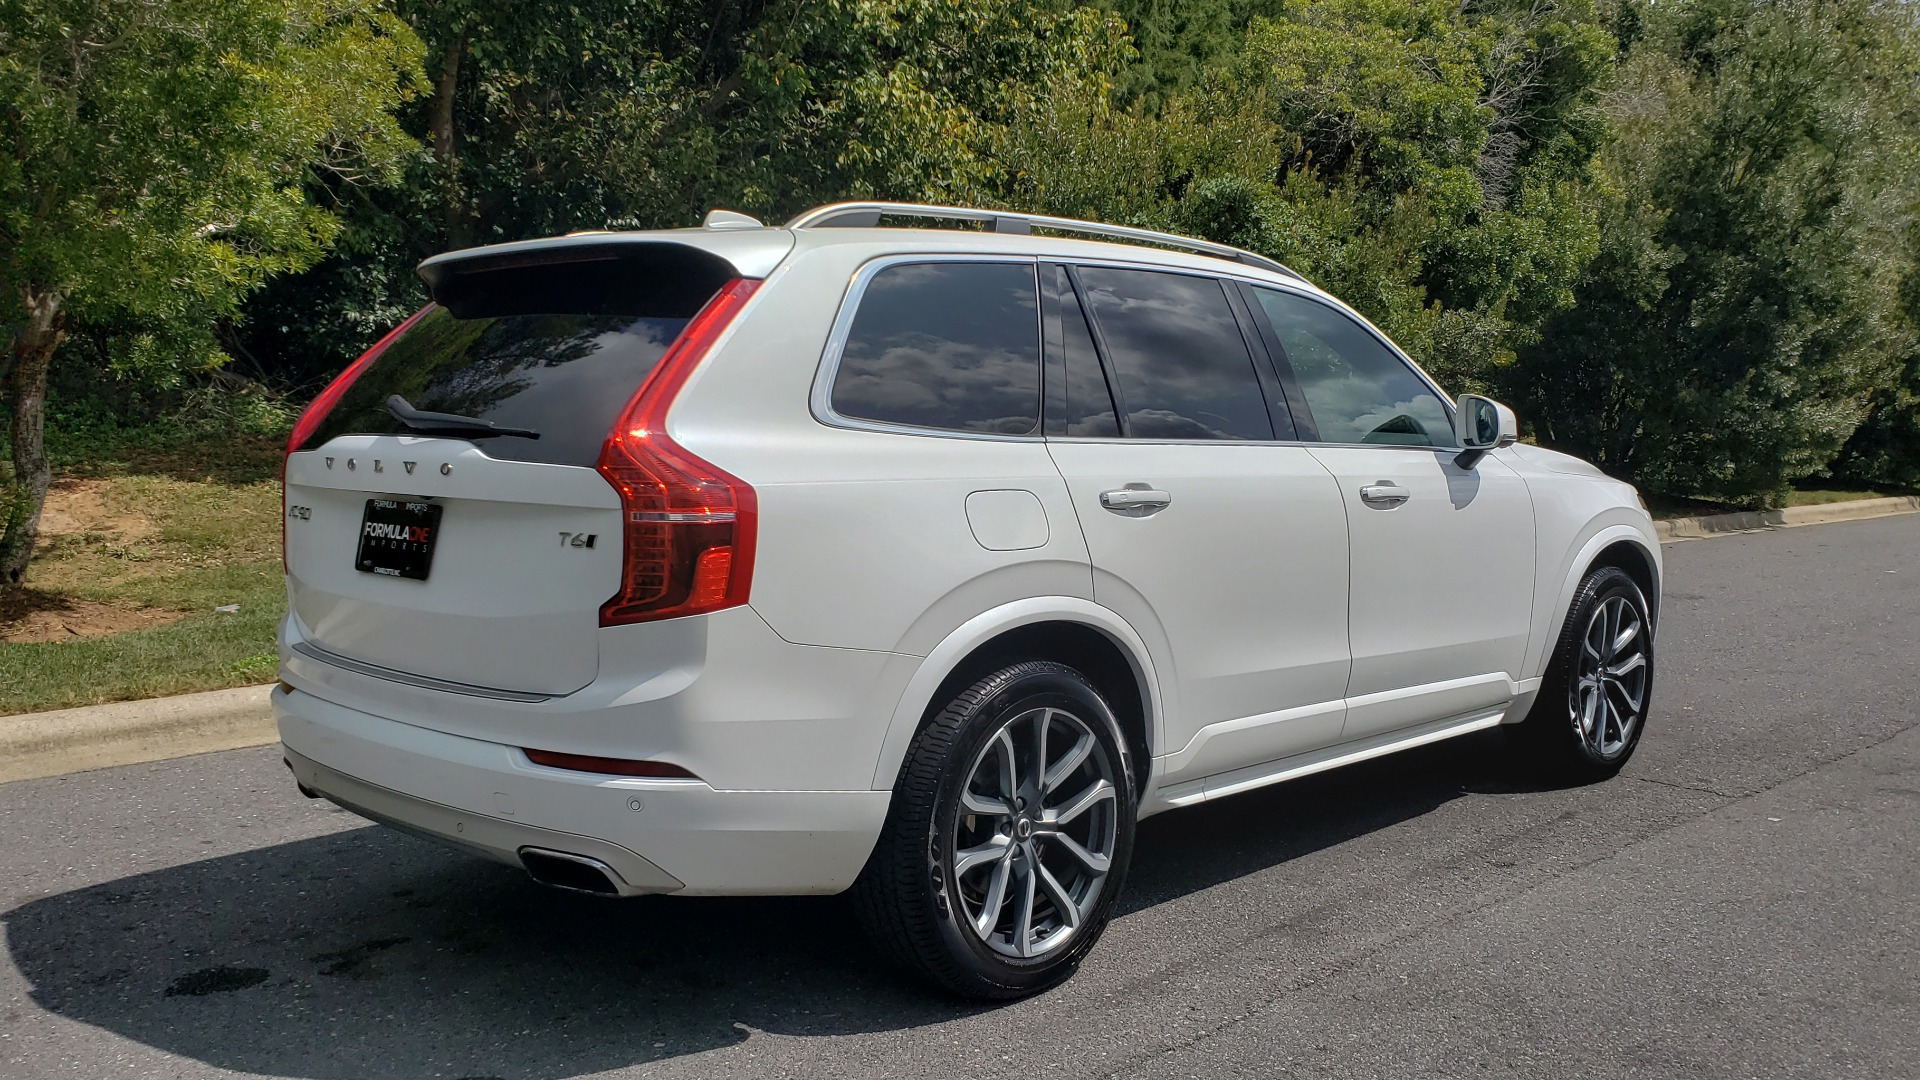 Used 2017 Volvo XC90 MOMENTUM PLUS T6 AWD / NAV / VISION / PROTECTION PKG for sale $34,995 at Formula Imports in Charlotte NC 28227 5